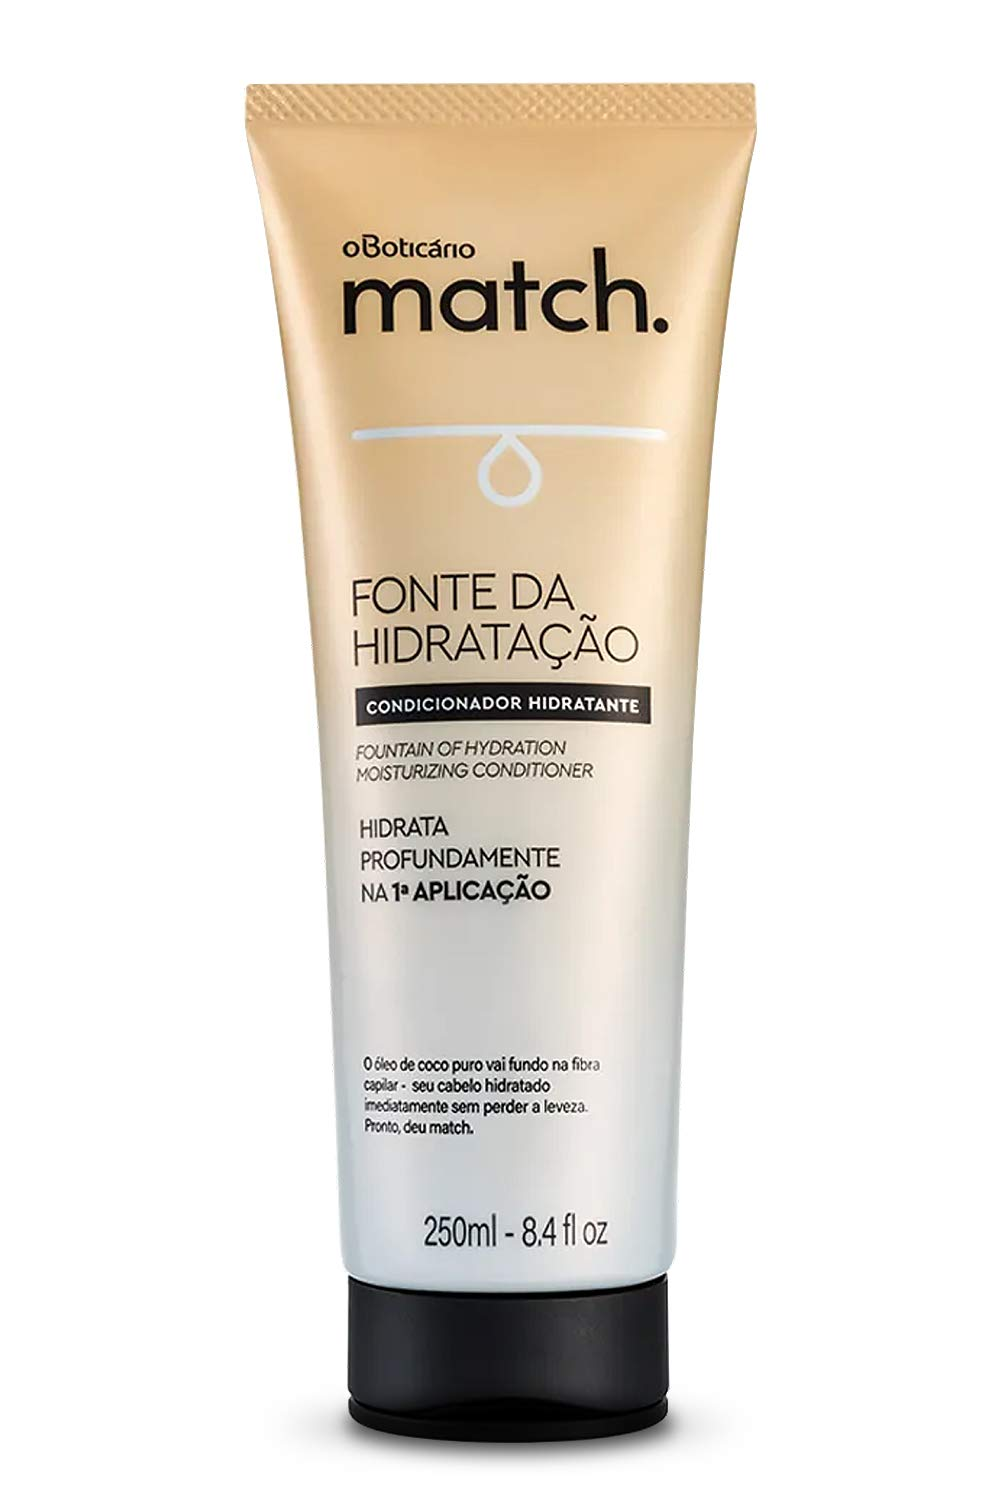 Match Fountain of Hydration Moisturizing Conditioner   100% Pure Coconut Oil   Hydrating Conditioner For Dry Hair & Damaged Hair (8.4 fl oz)